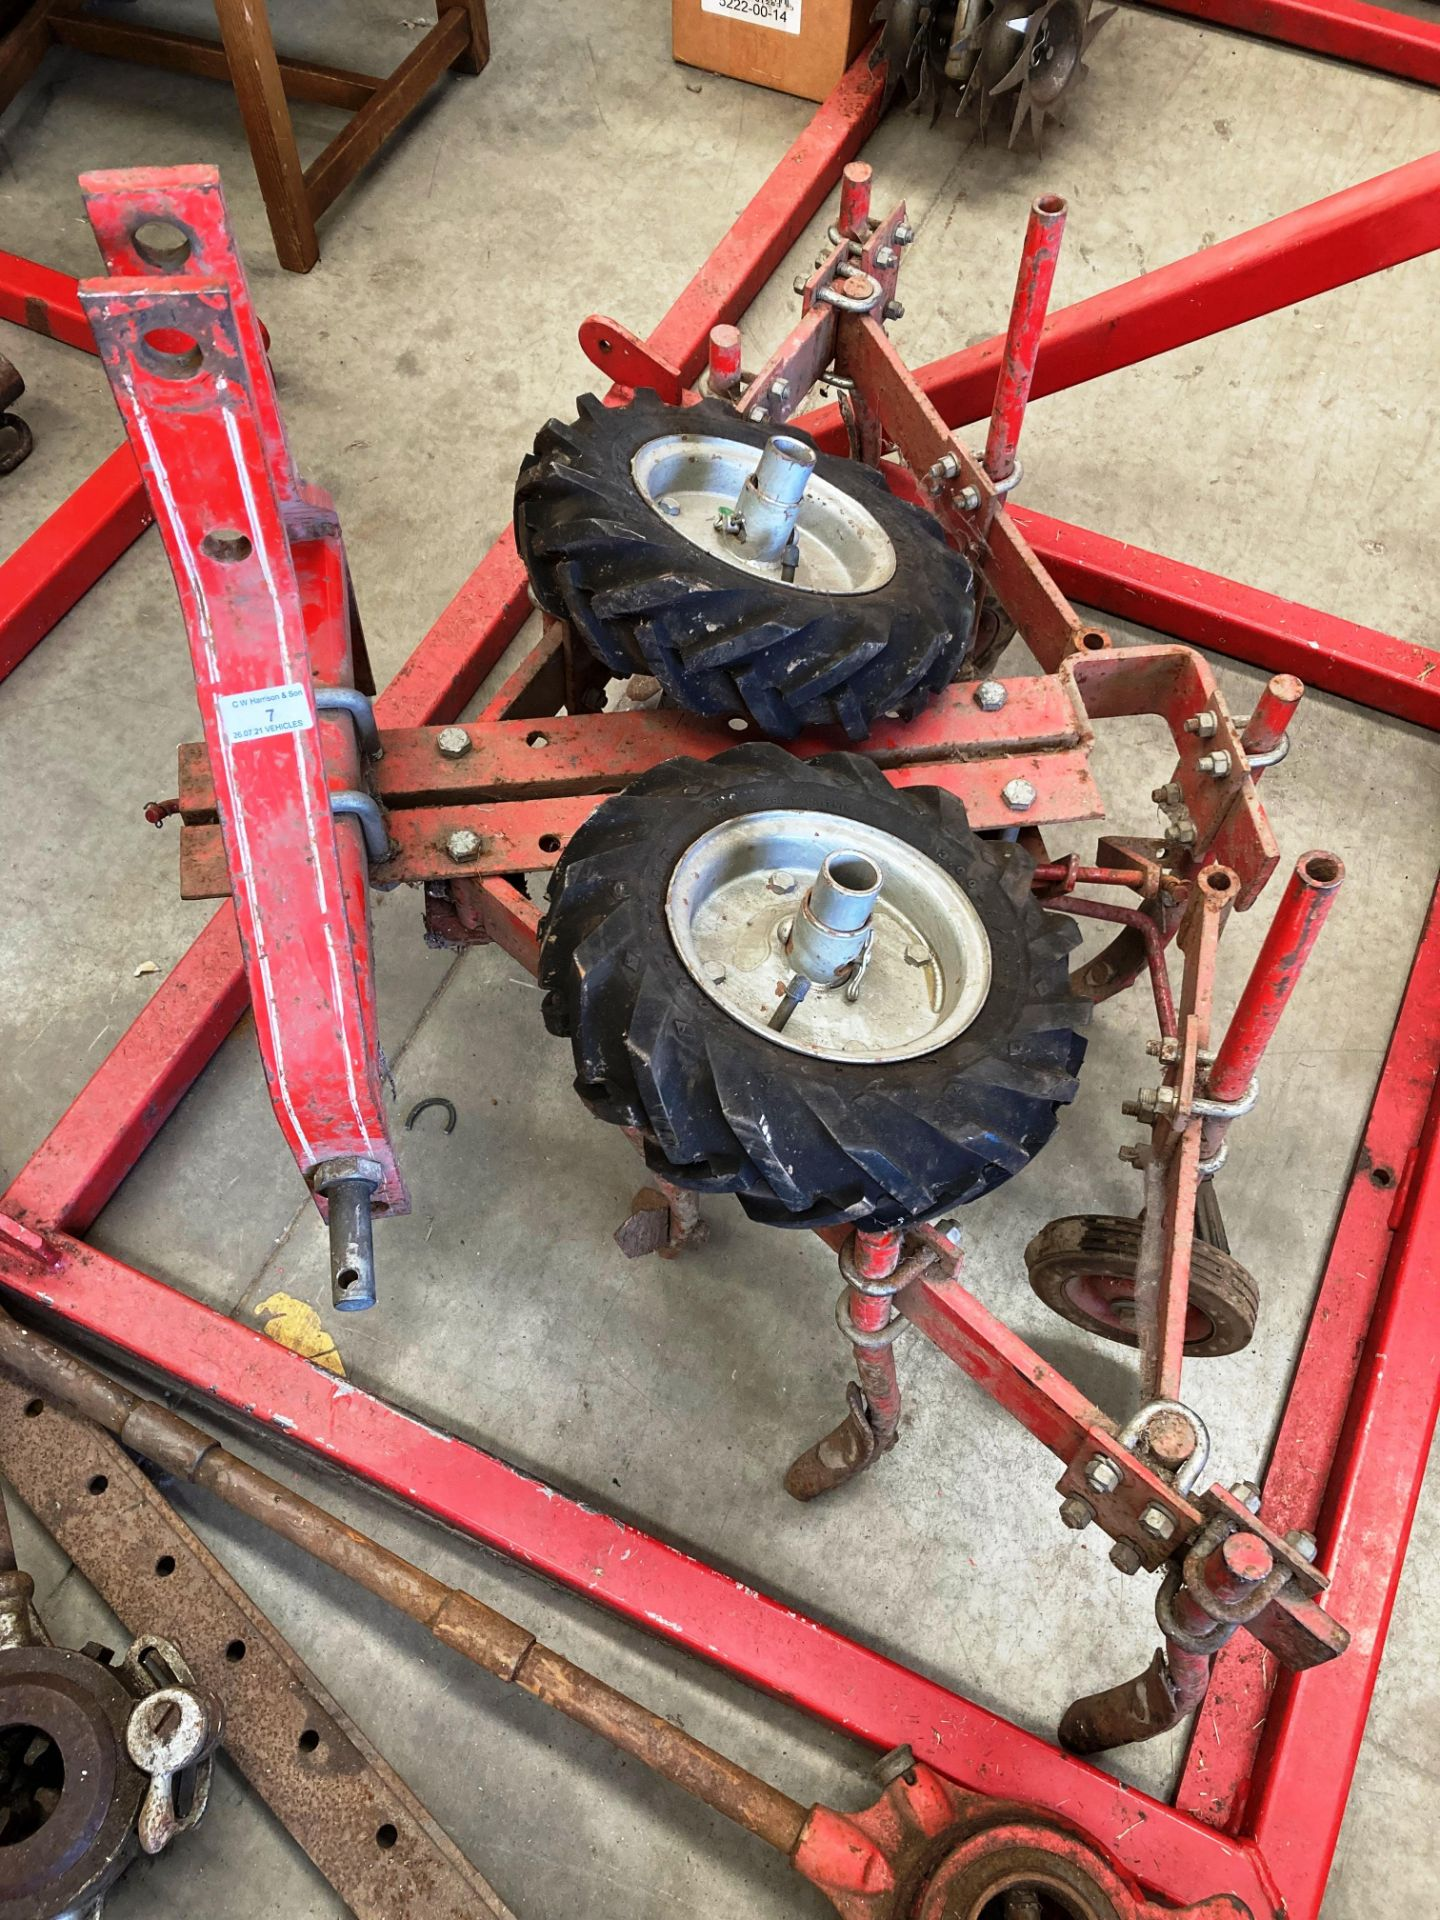 A SEVEN TINE CULTIVATOR serial number 586542 - possibly manufactured by Neodesha,